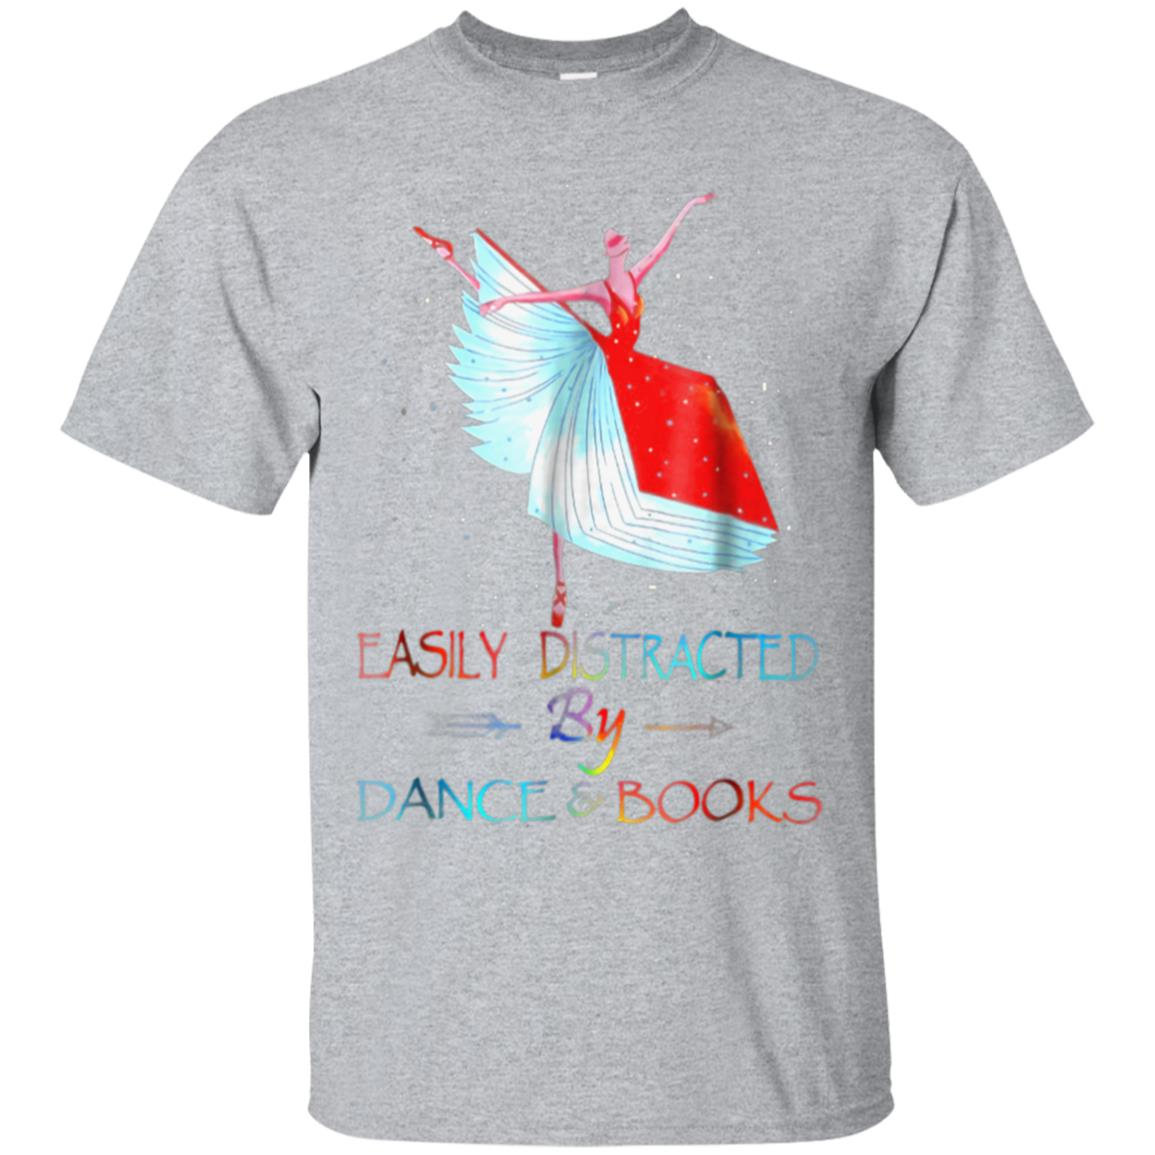 Easily Distracted by Dance And Book BALLET BOOK Tshirt 99promocode